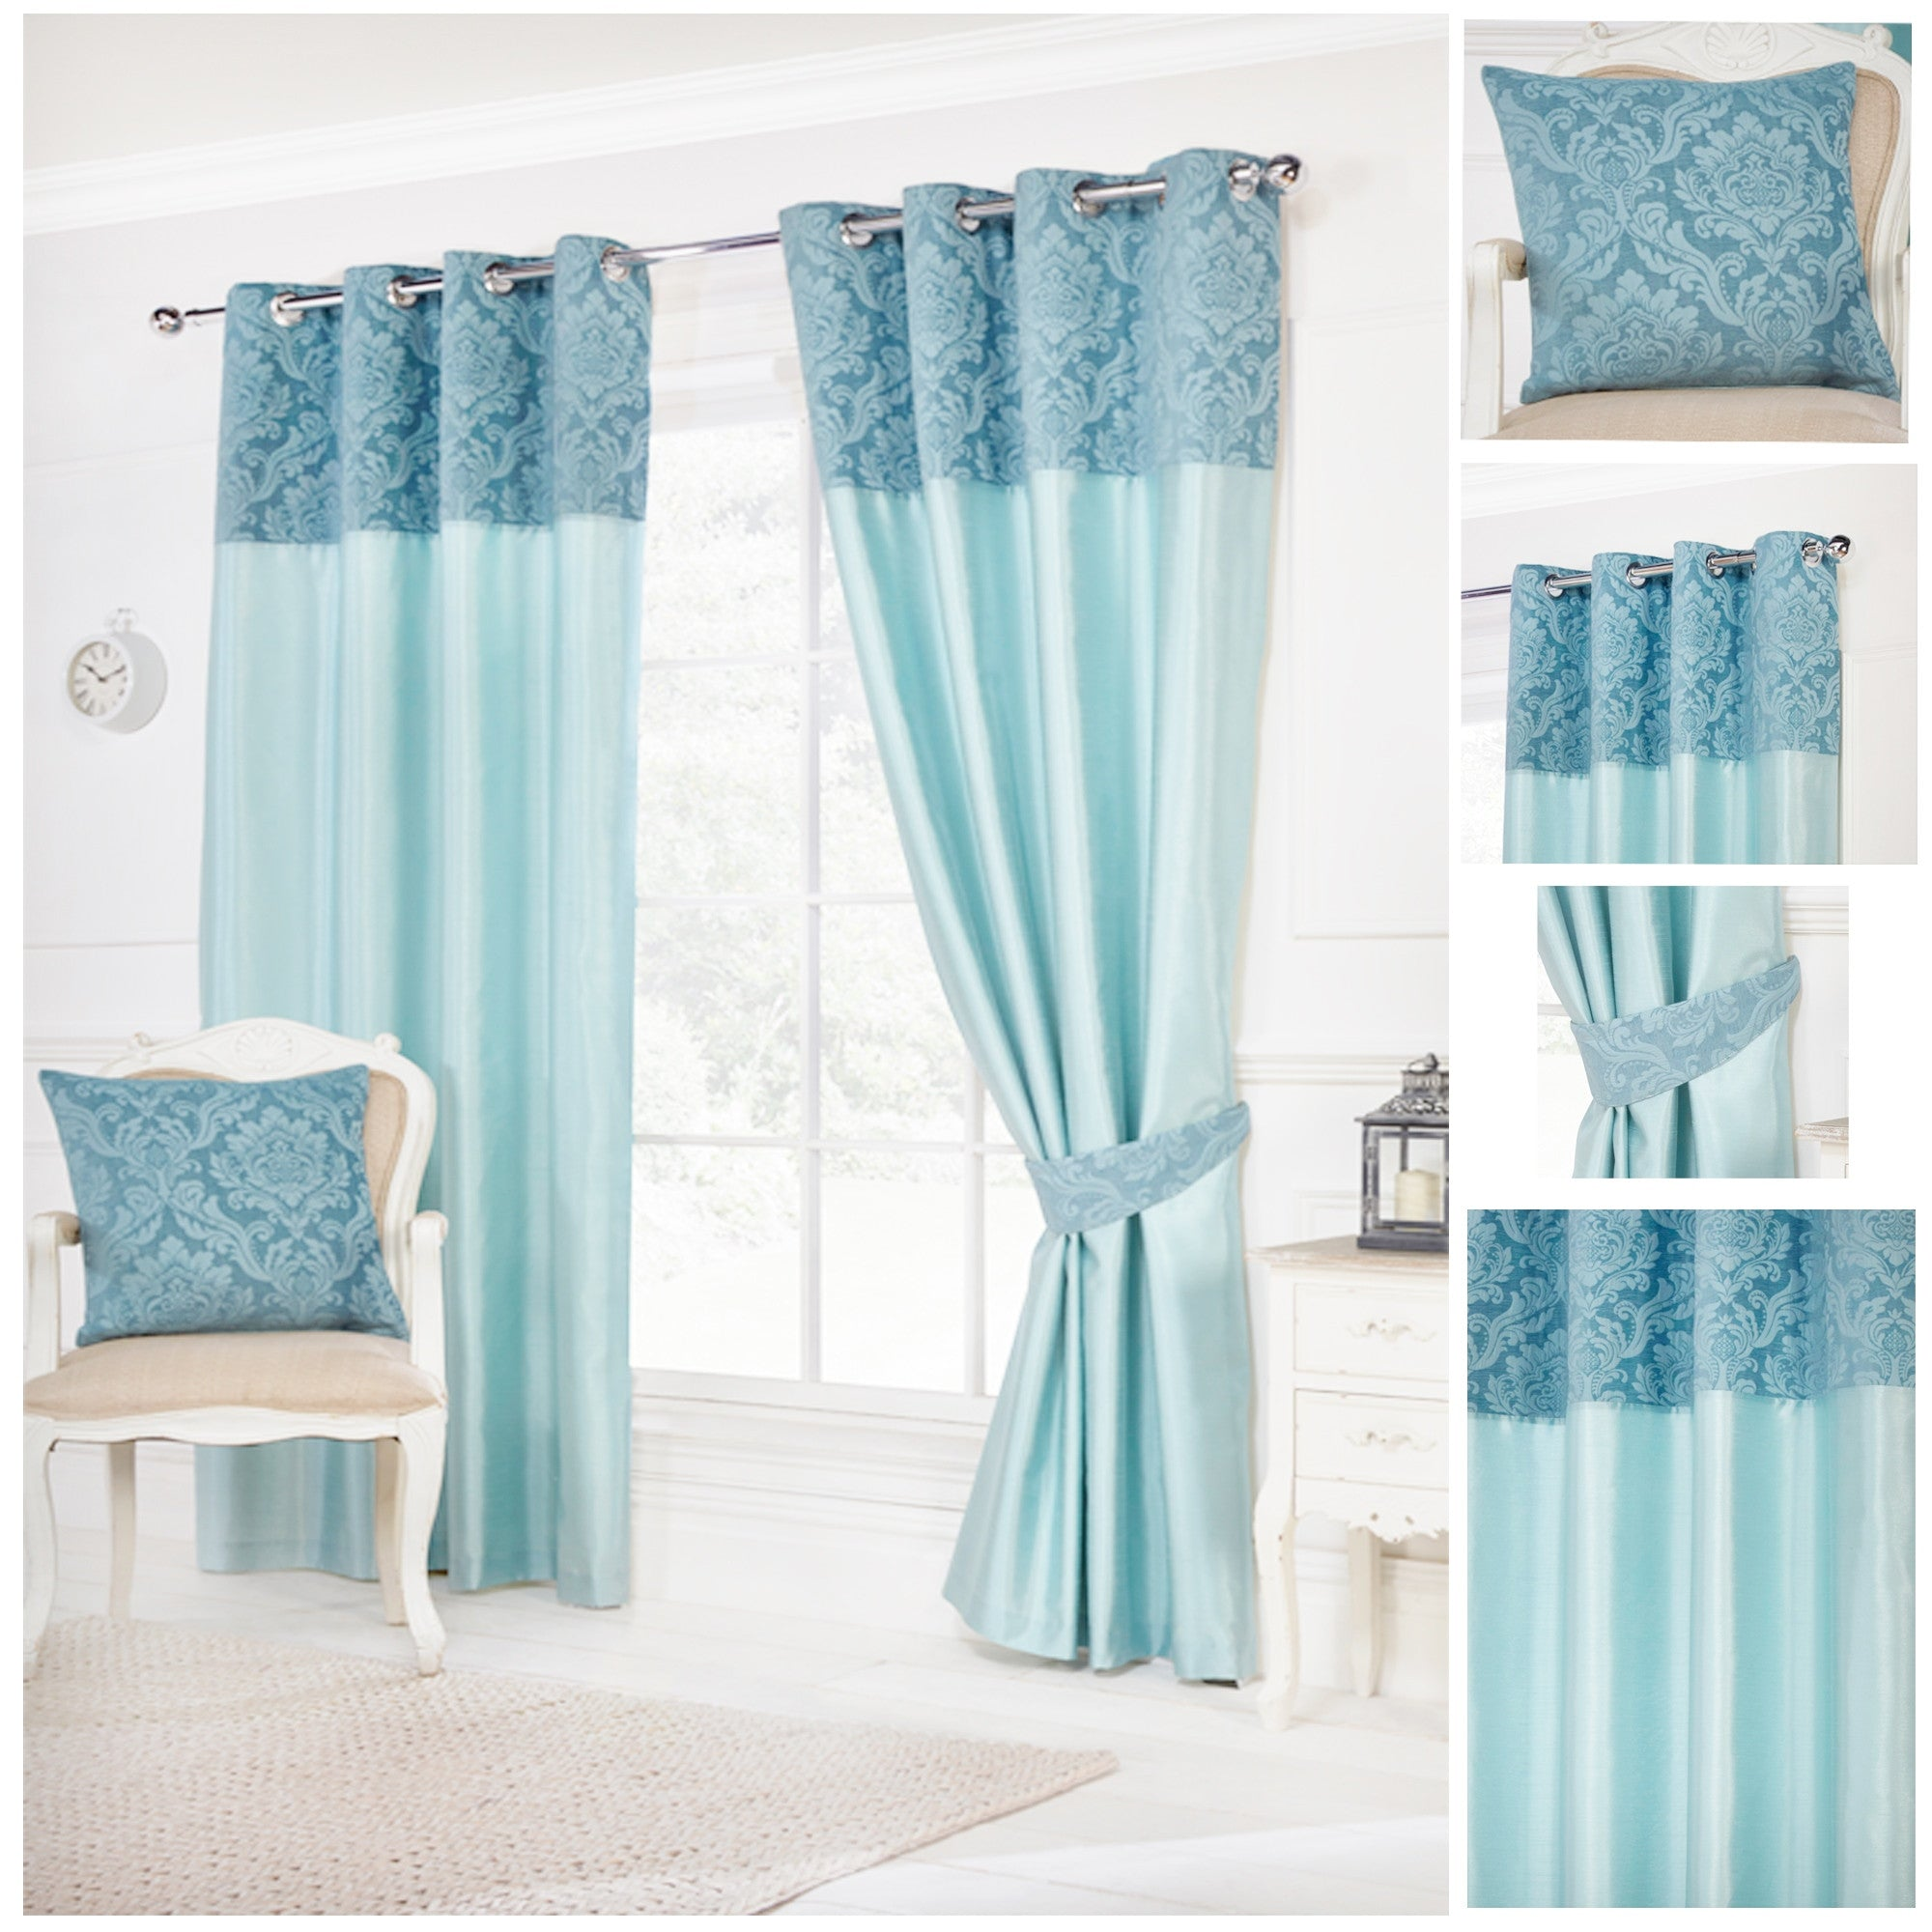 Darcy Teal Ring Top Eyelet Fully Lined Readymade Curtains